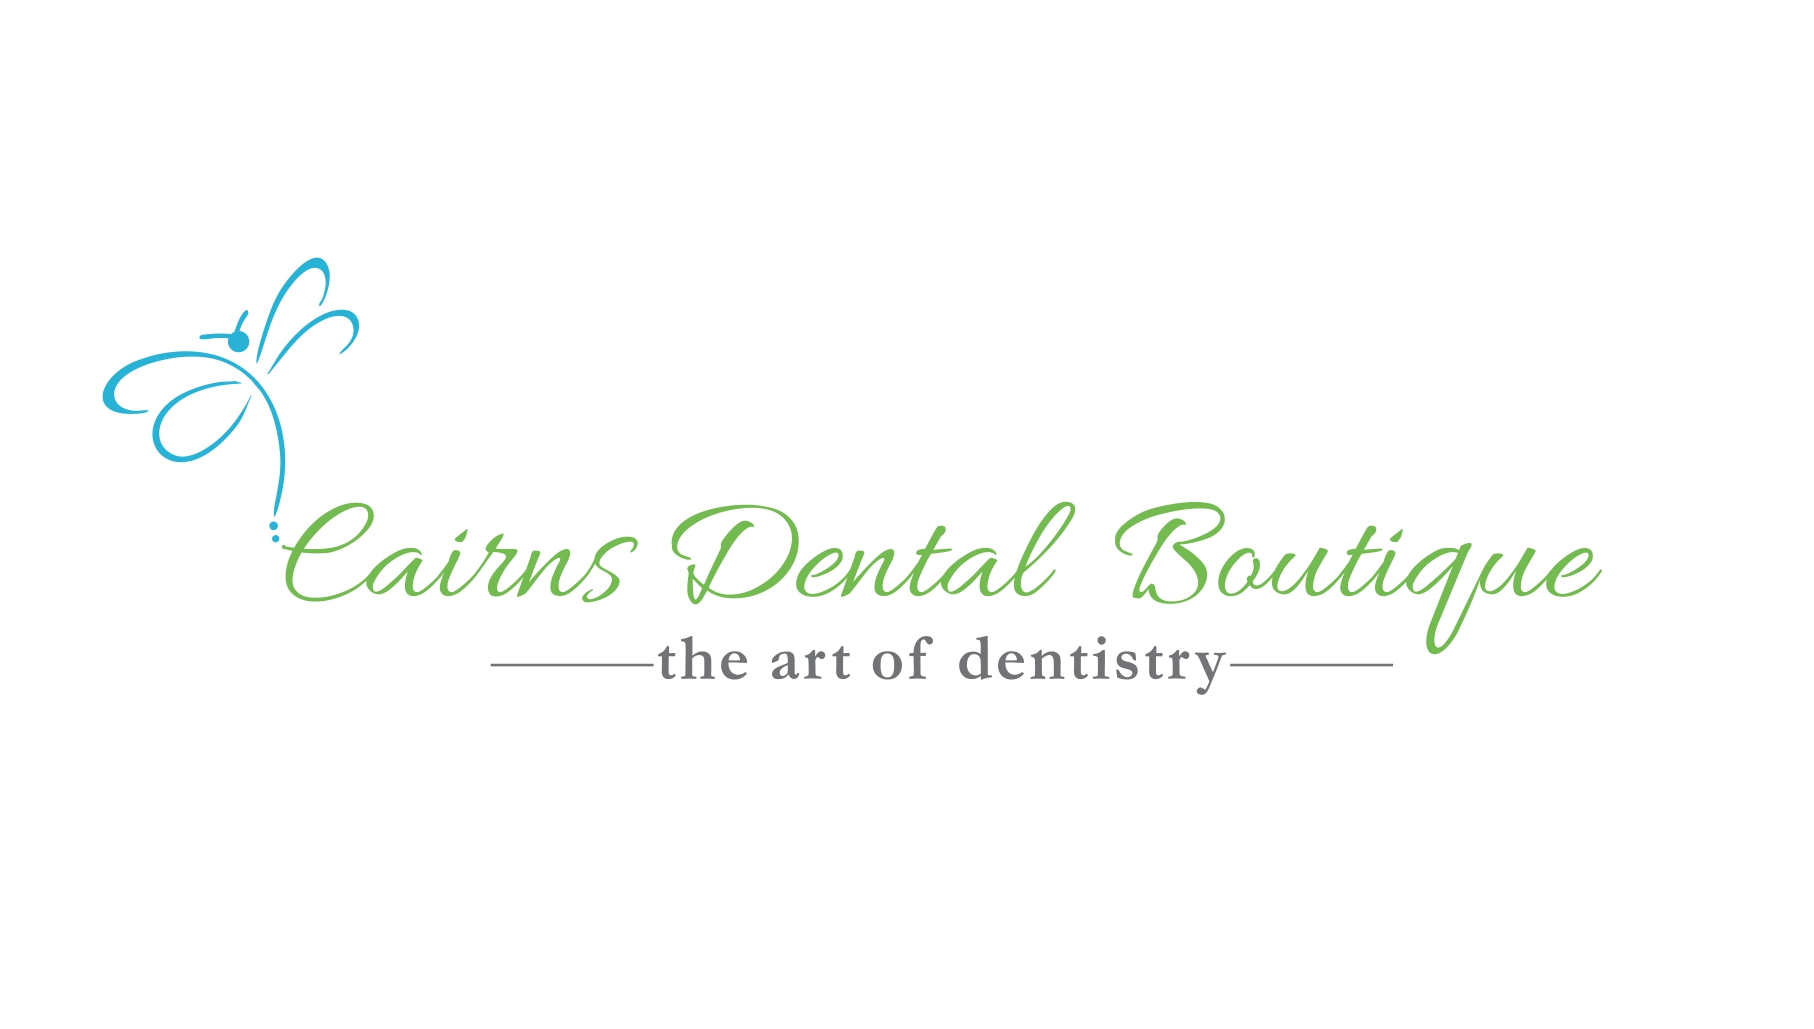 cairns dental final logo (1).jpg